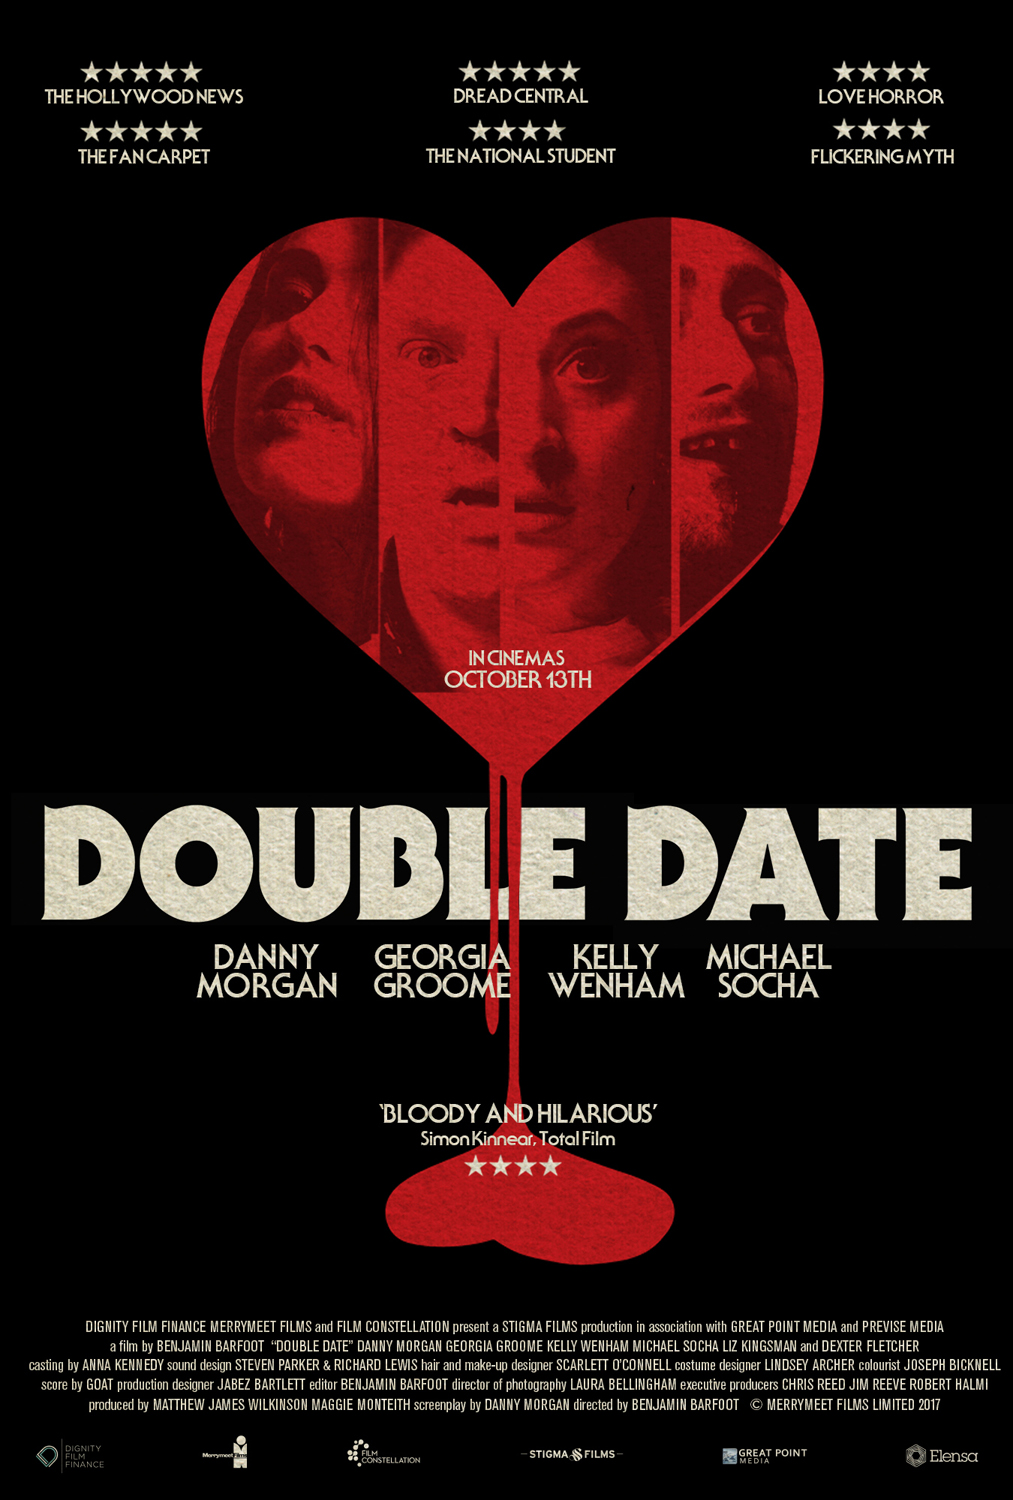 When the Night Doesn't Go as Desired: Double Date (2017)